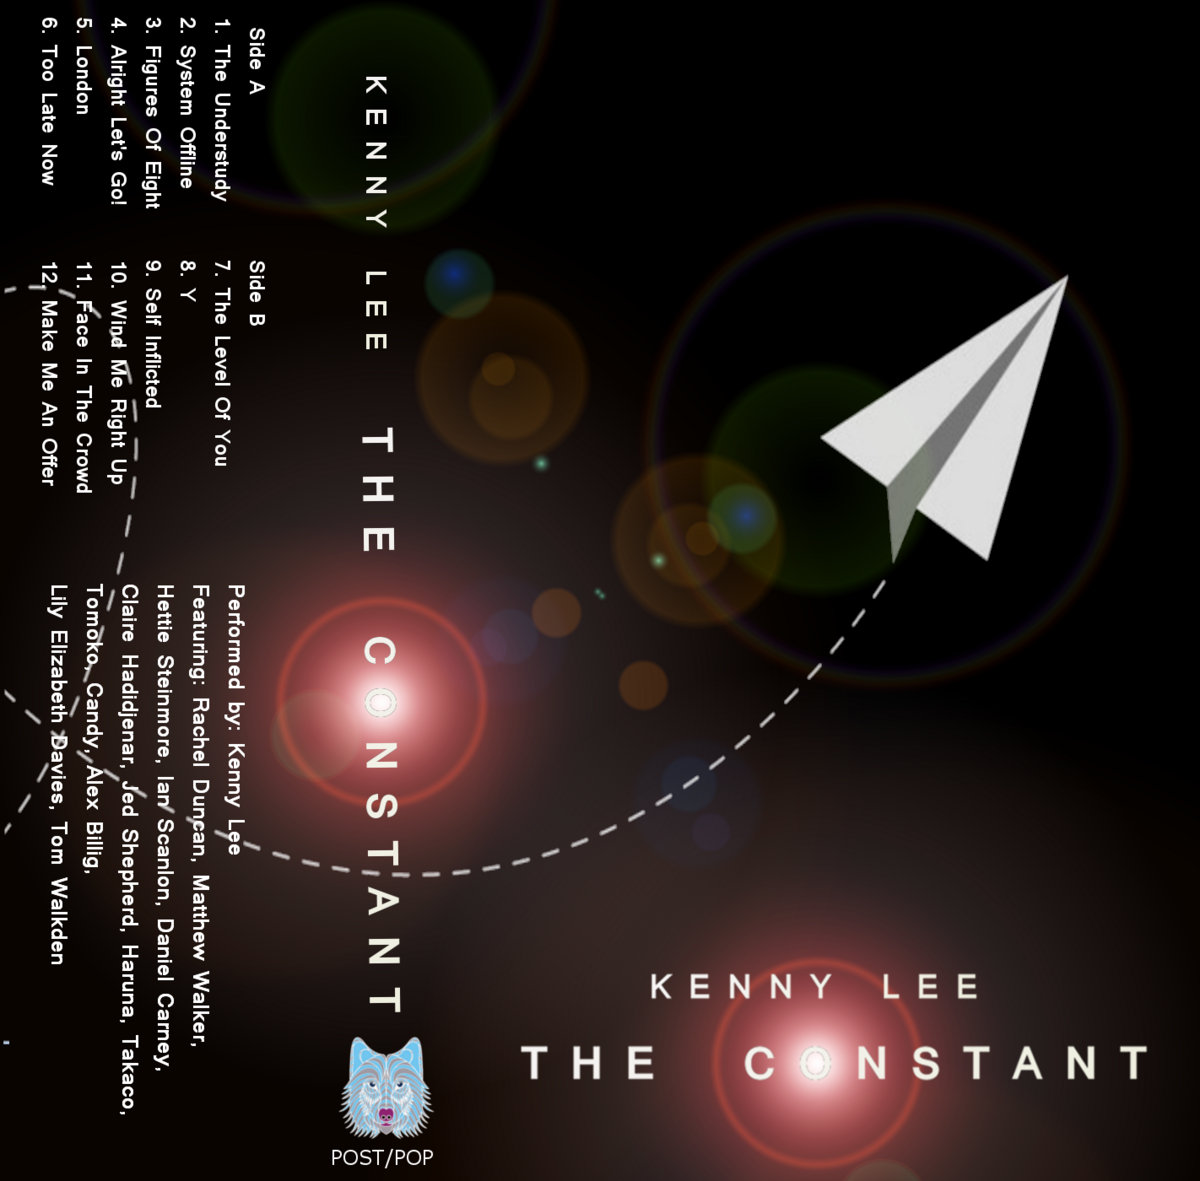 KENNY LEE - THE CONSTANT (PXP049)